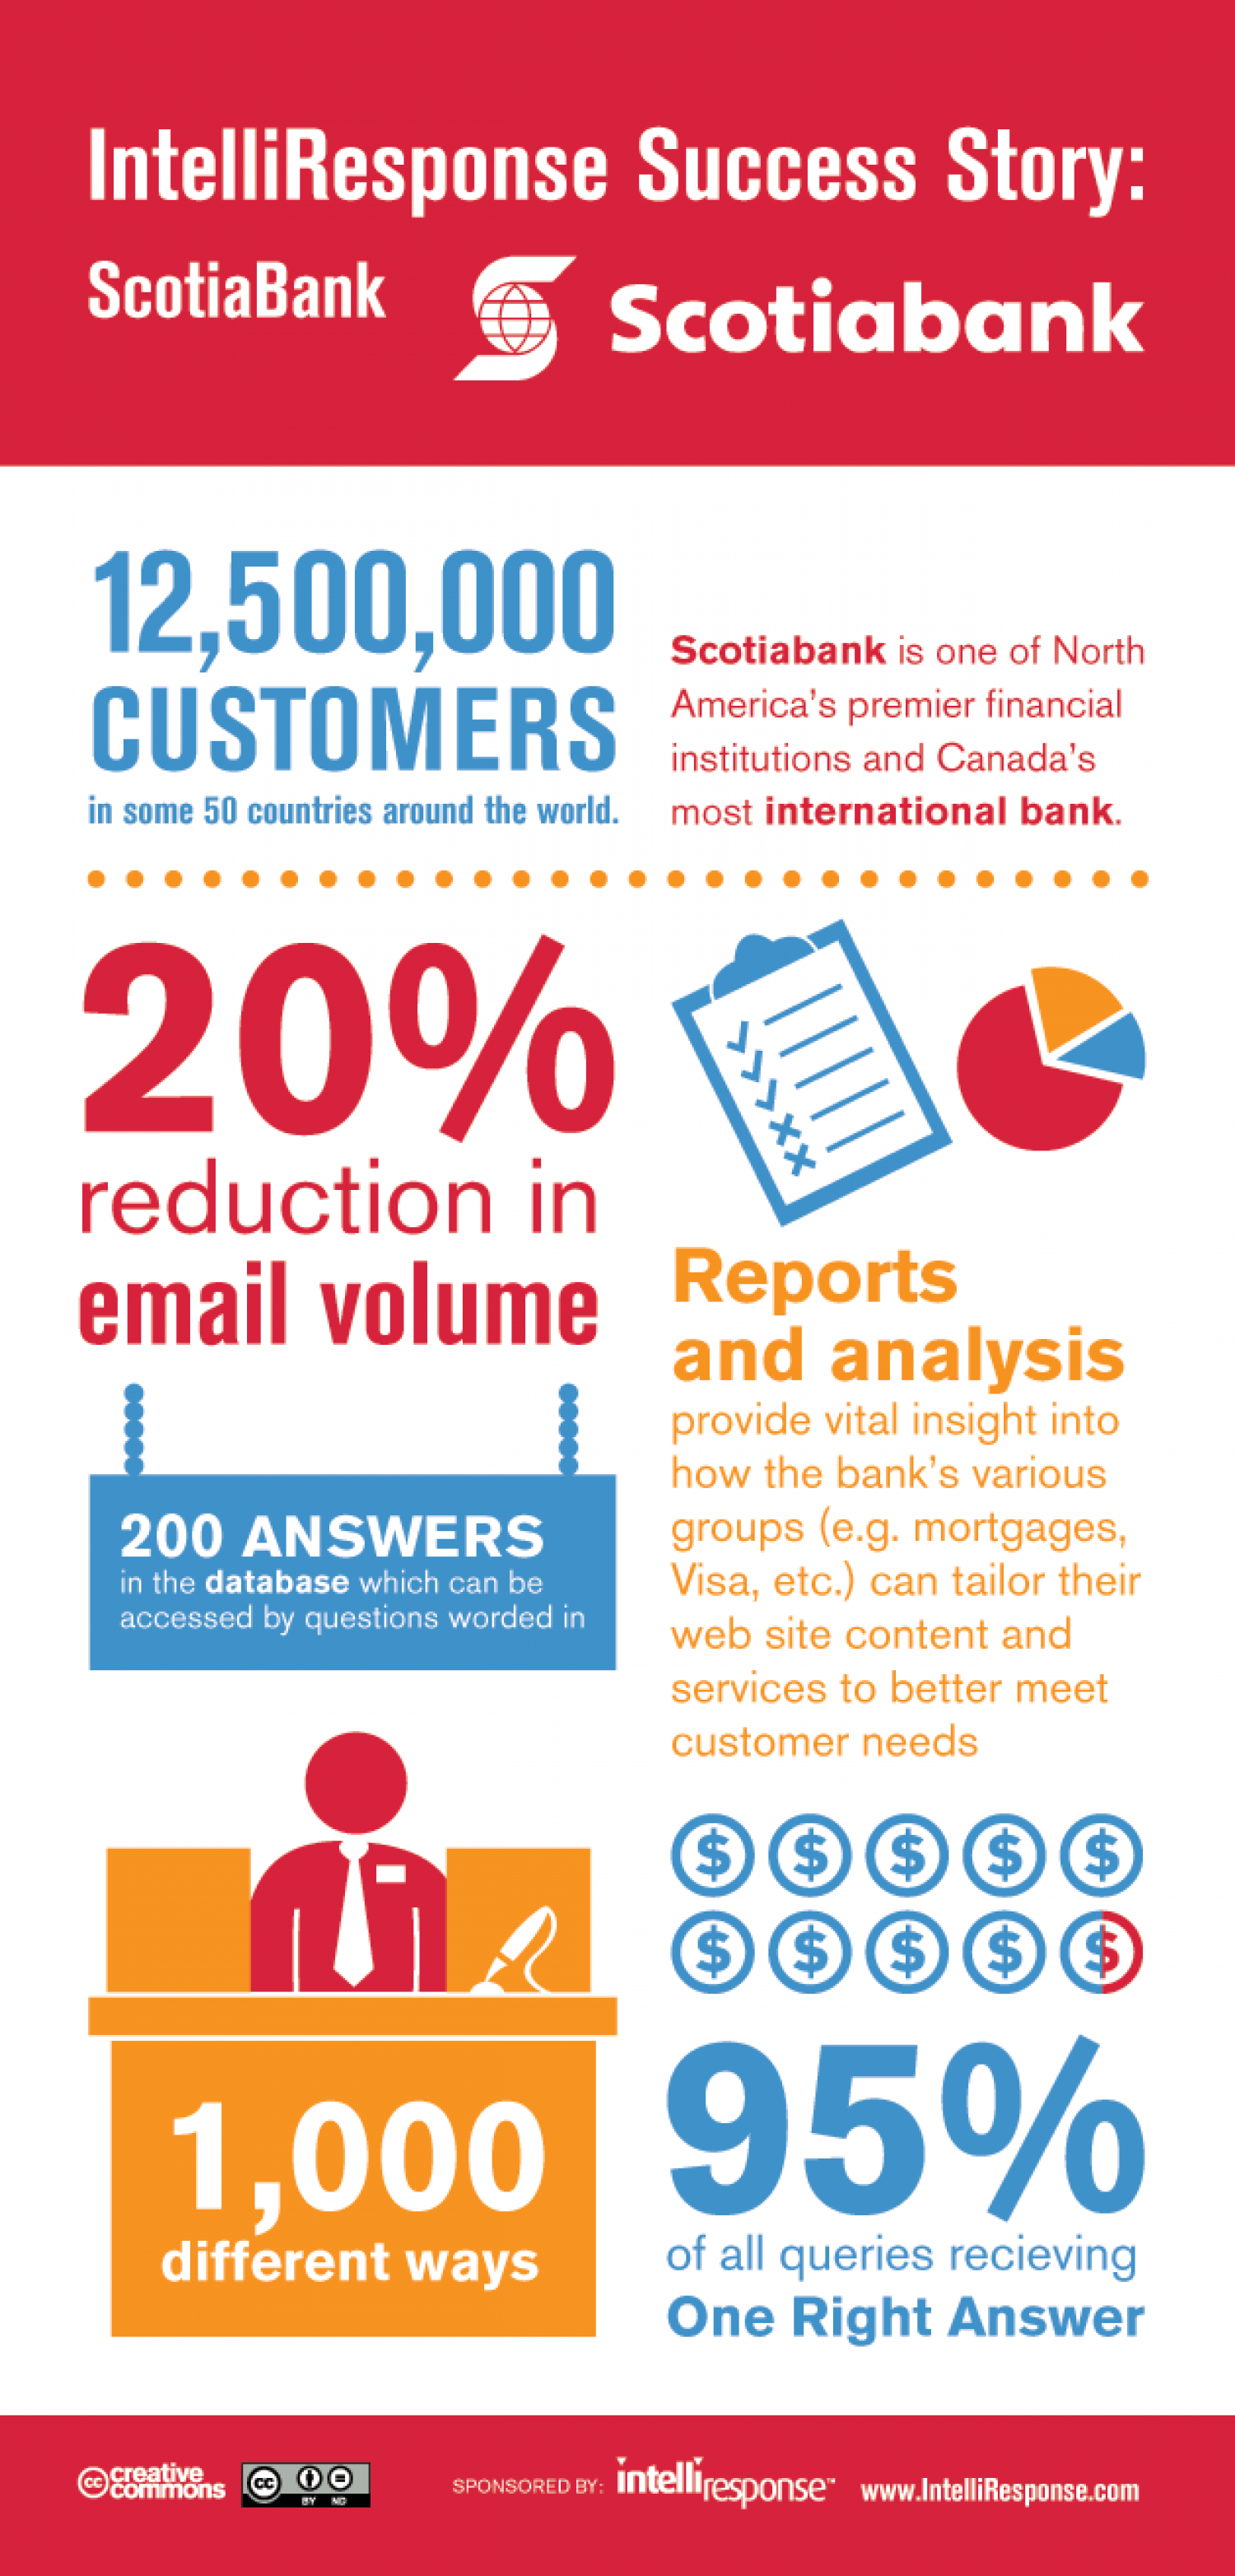 Multi-Billion Dollar Bank Reduces Emails By Over 20% With New Virtual Agent Technology Infographic